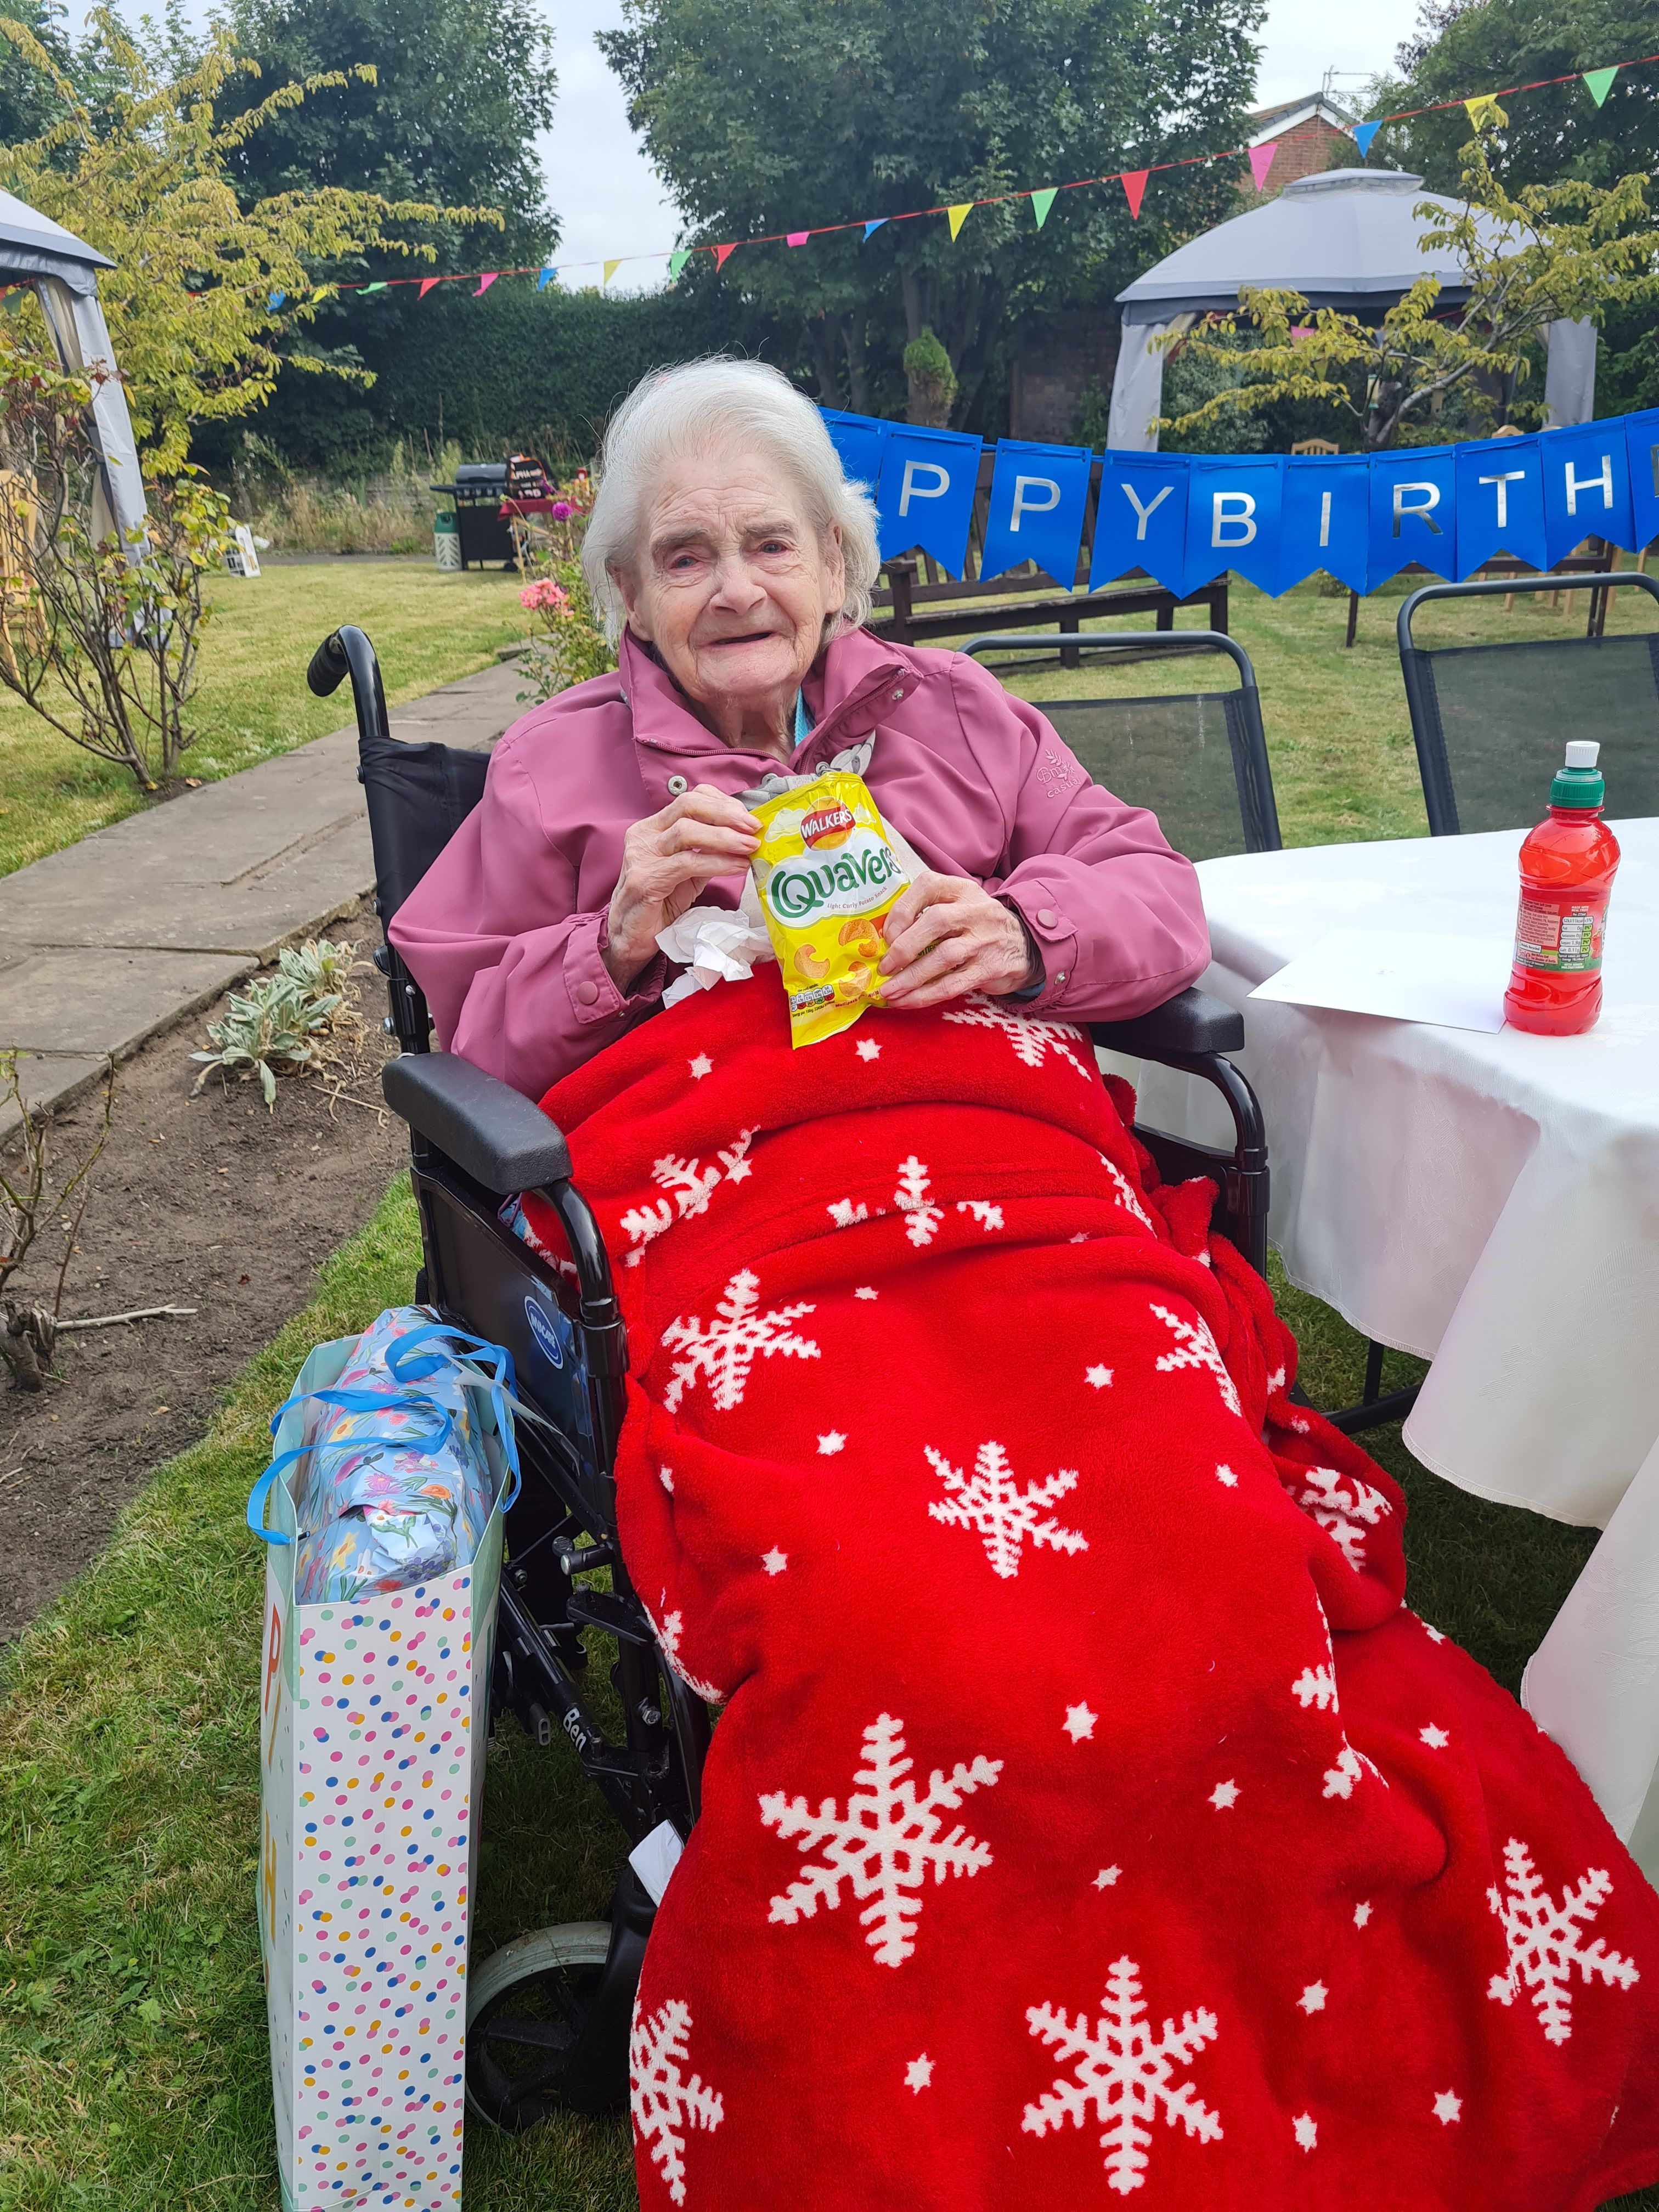 Care home hosts garden fete for residents and families